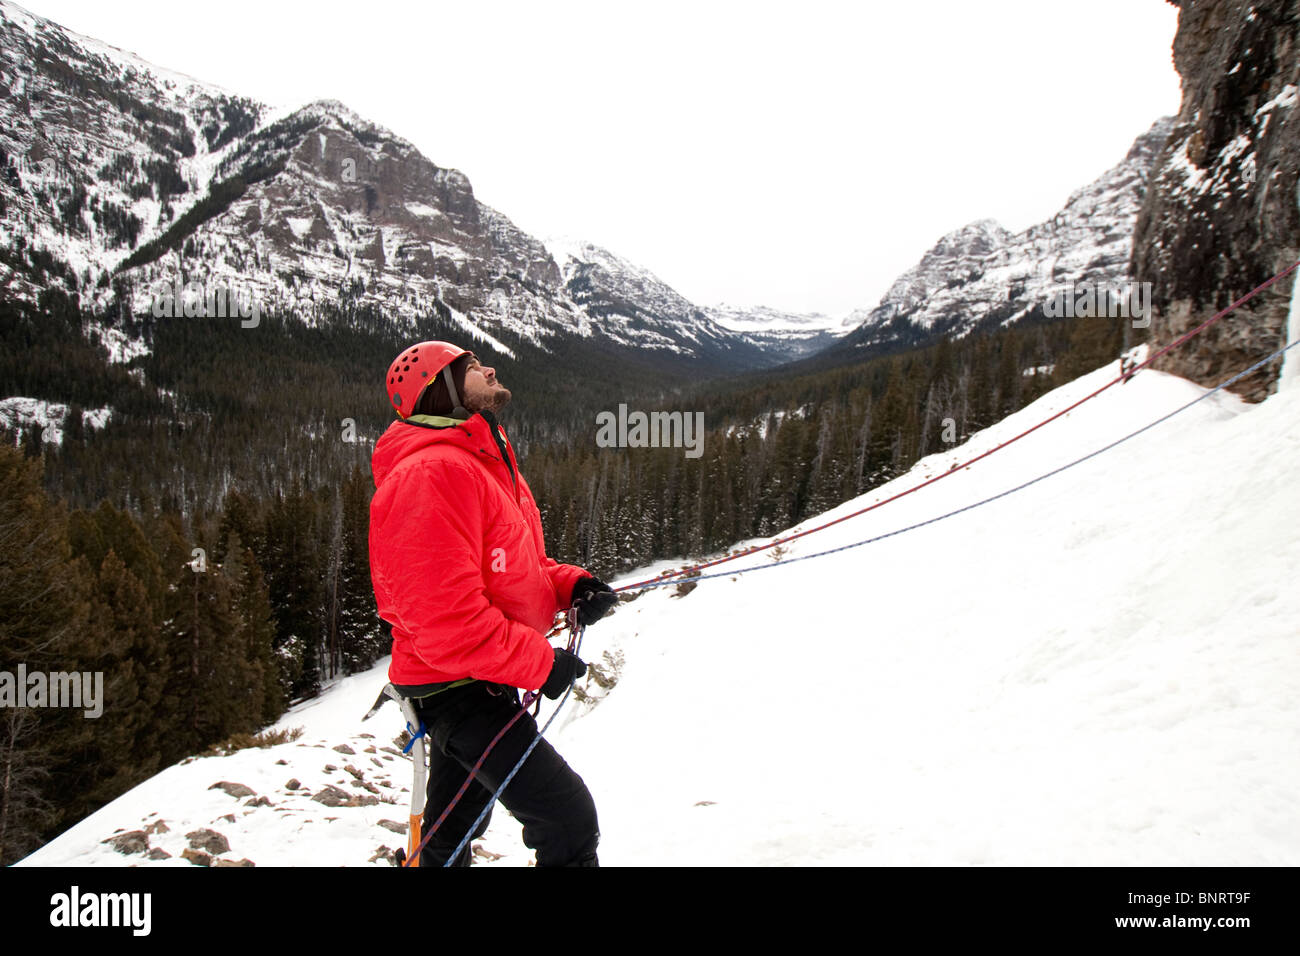 A man belaying an ice climber. - Stock Image